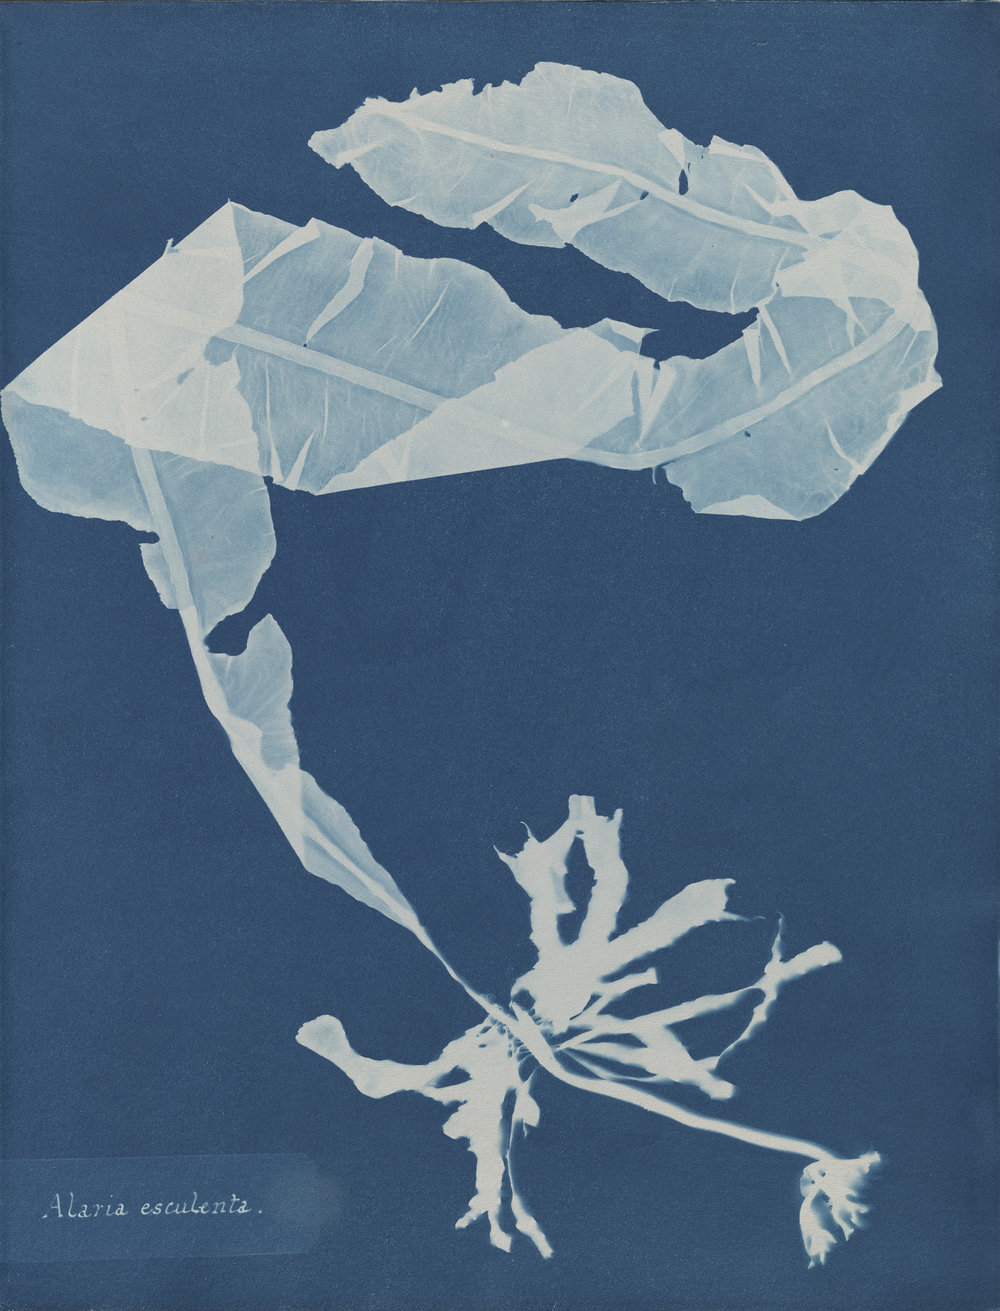 © Anna Atkins (1799–1871), Alaria esculenta, from Part XII of Photographs of British Algae_ Cyanotype Impressions, 1849-1850, cyanotype. Spencer Collection, The New York Public Library, Astor, Lenox and Tilden Foundations..jpg